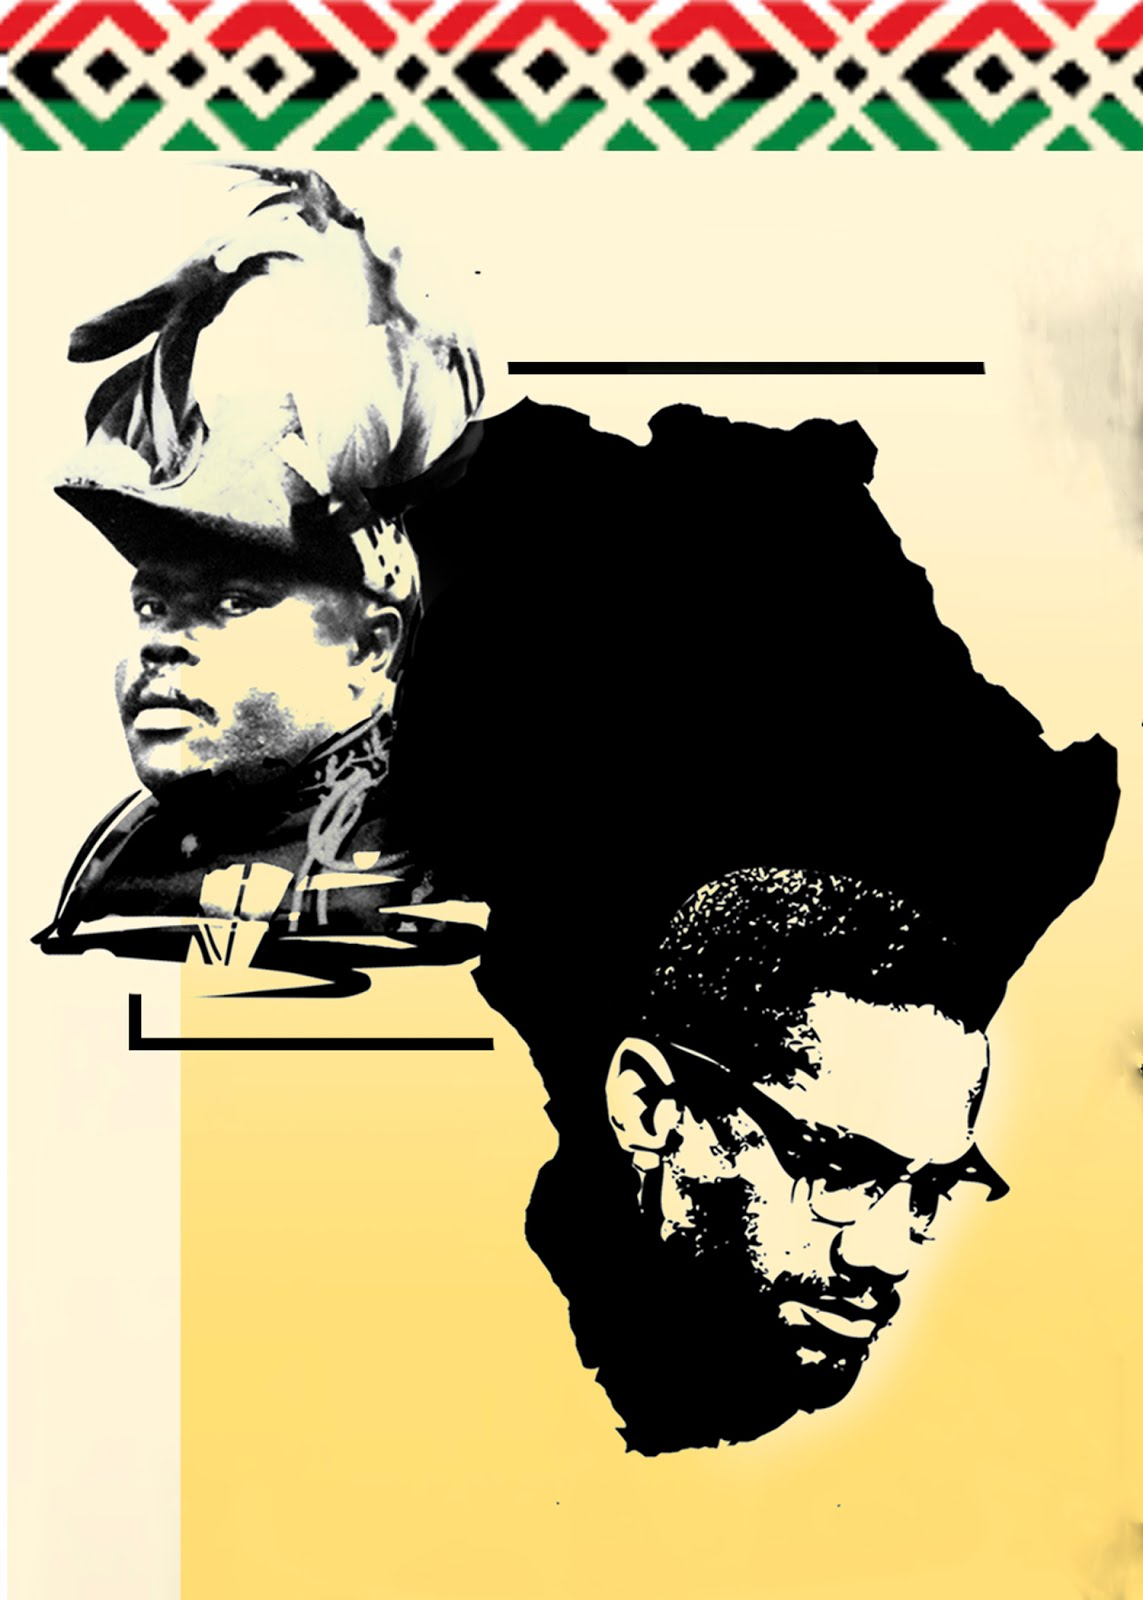 Saluting Malcolm X & African Liberation Day SALE! Buy 2 plus furniture pcs & get 20% OFF everything